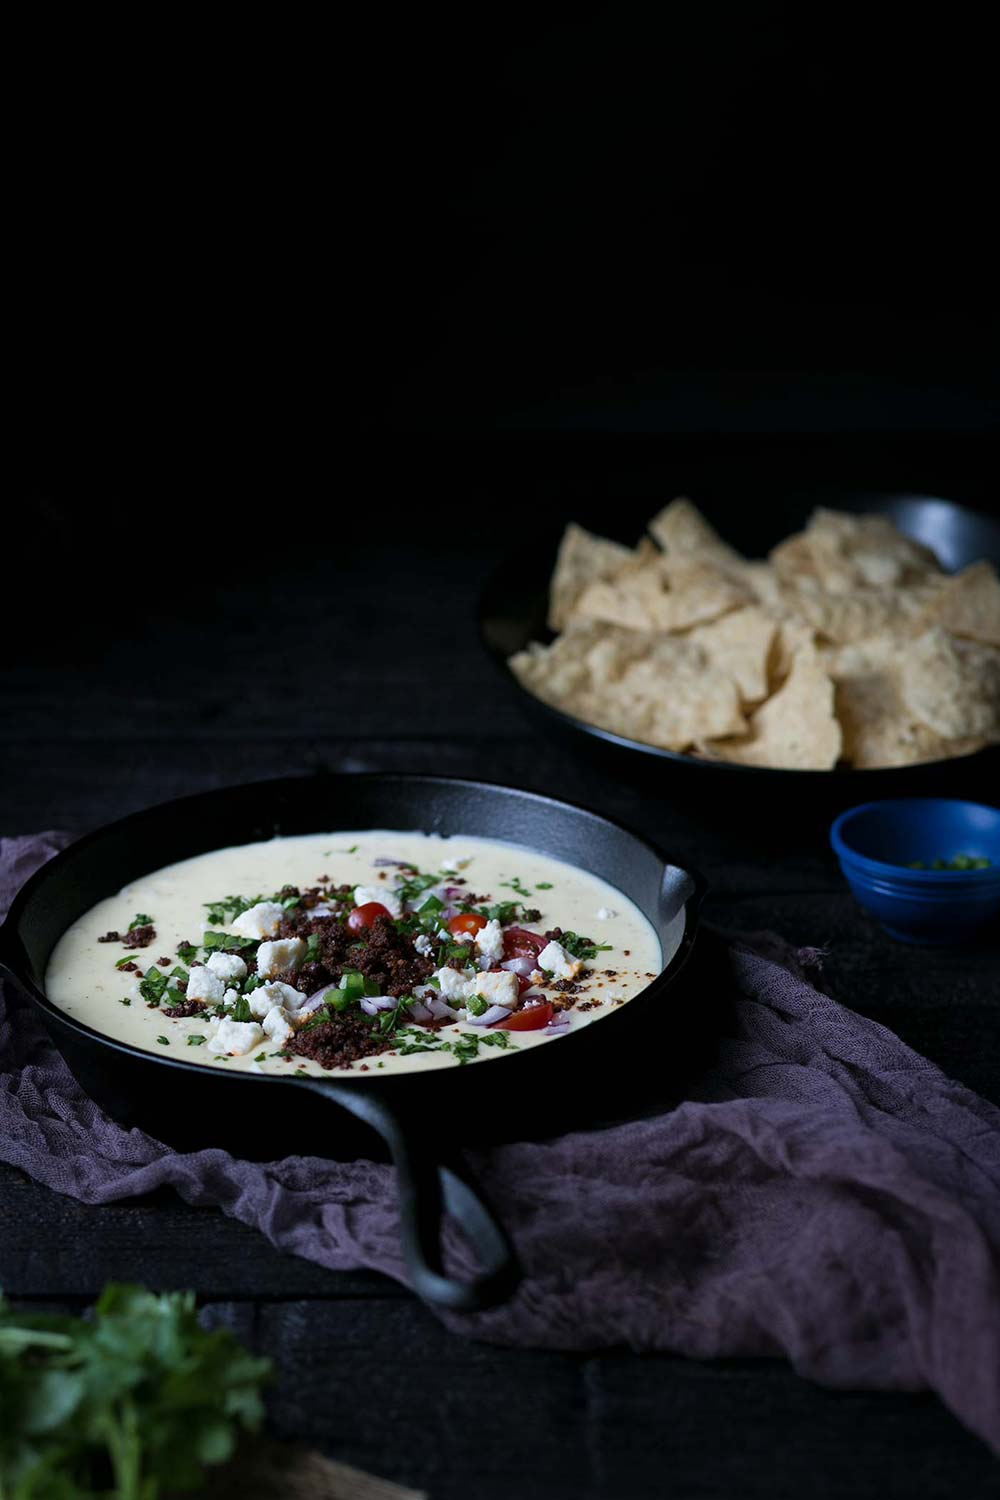 This Queso Blanco Dip gets a rich, savory kick from spicy chorizo, which can be omitted if you prefer a more basic queso dip. This Cheesy dip is always a hit at parties!